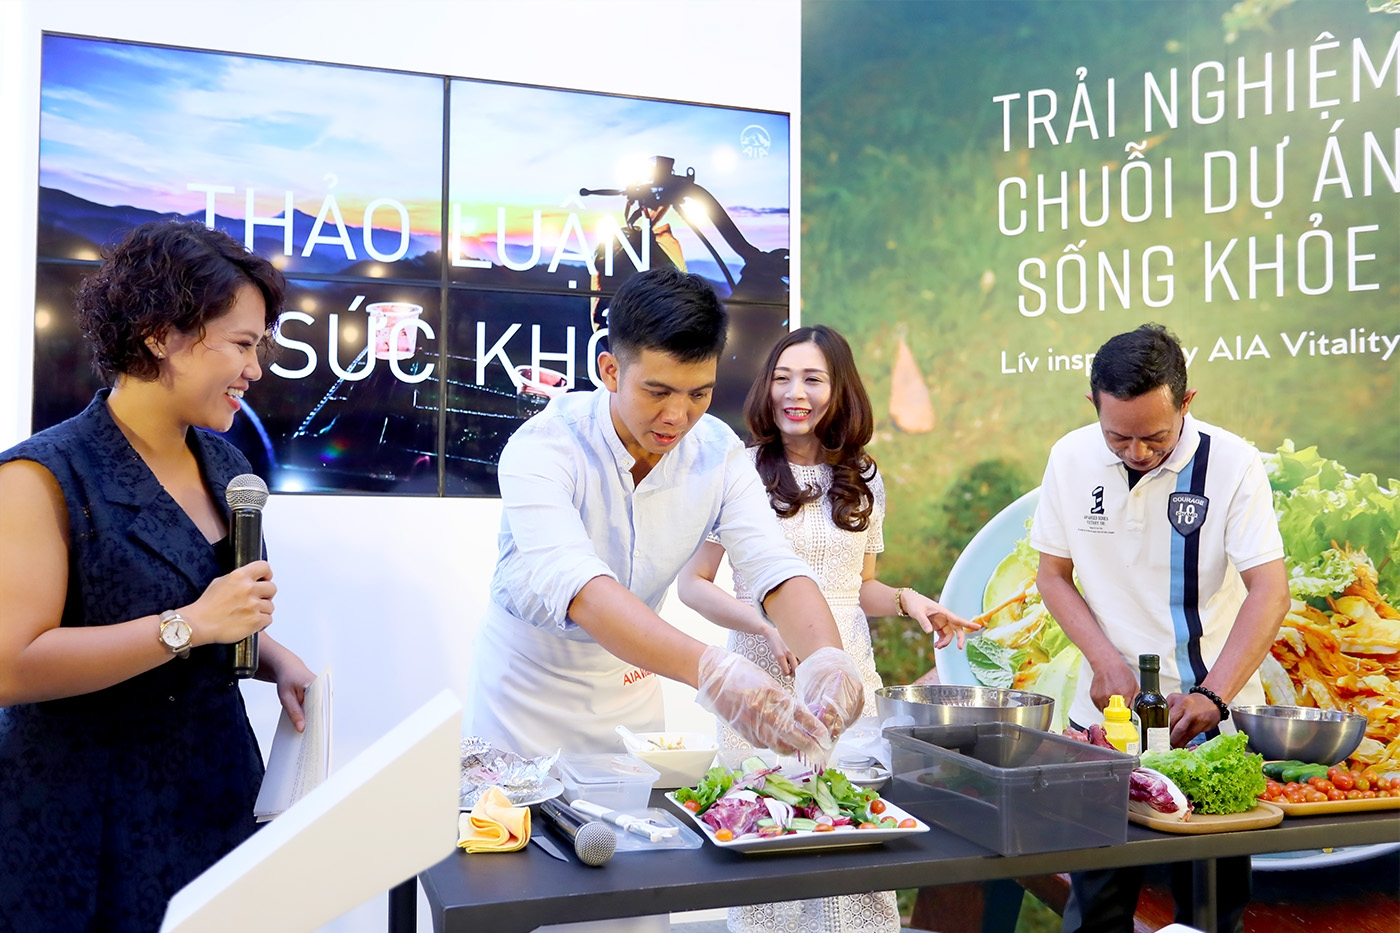 aia vietnam promotes healthy living with new content hub and cookbook